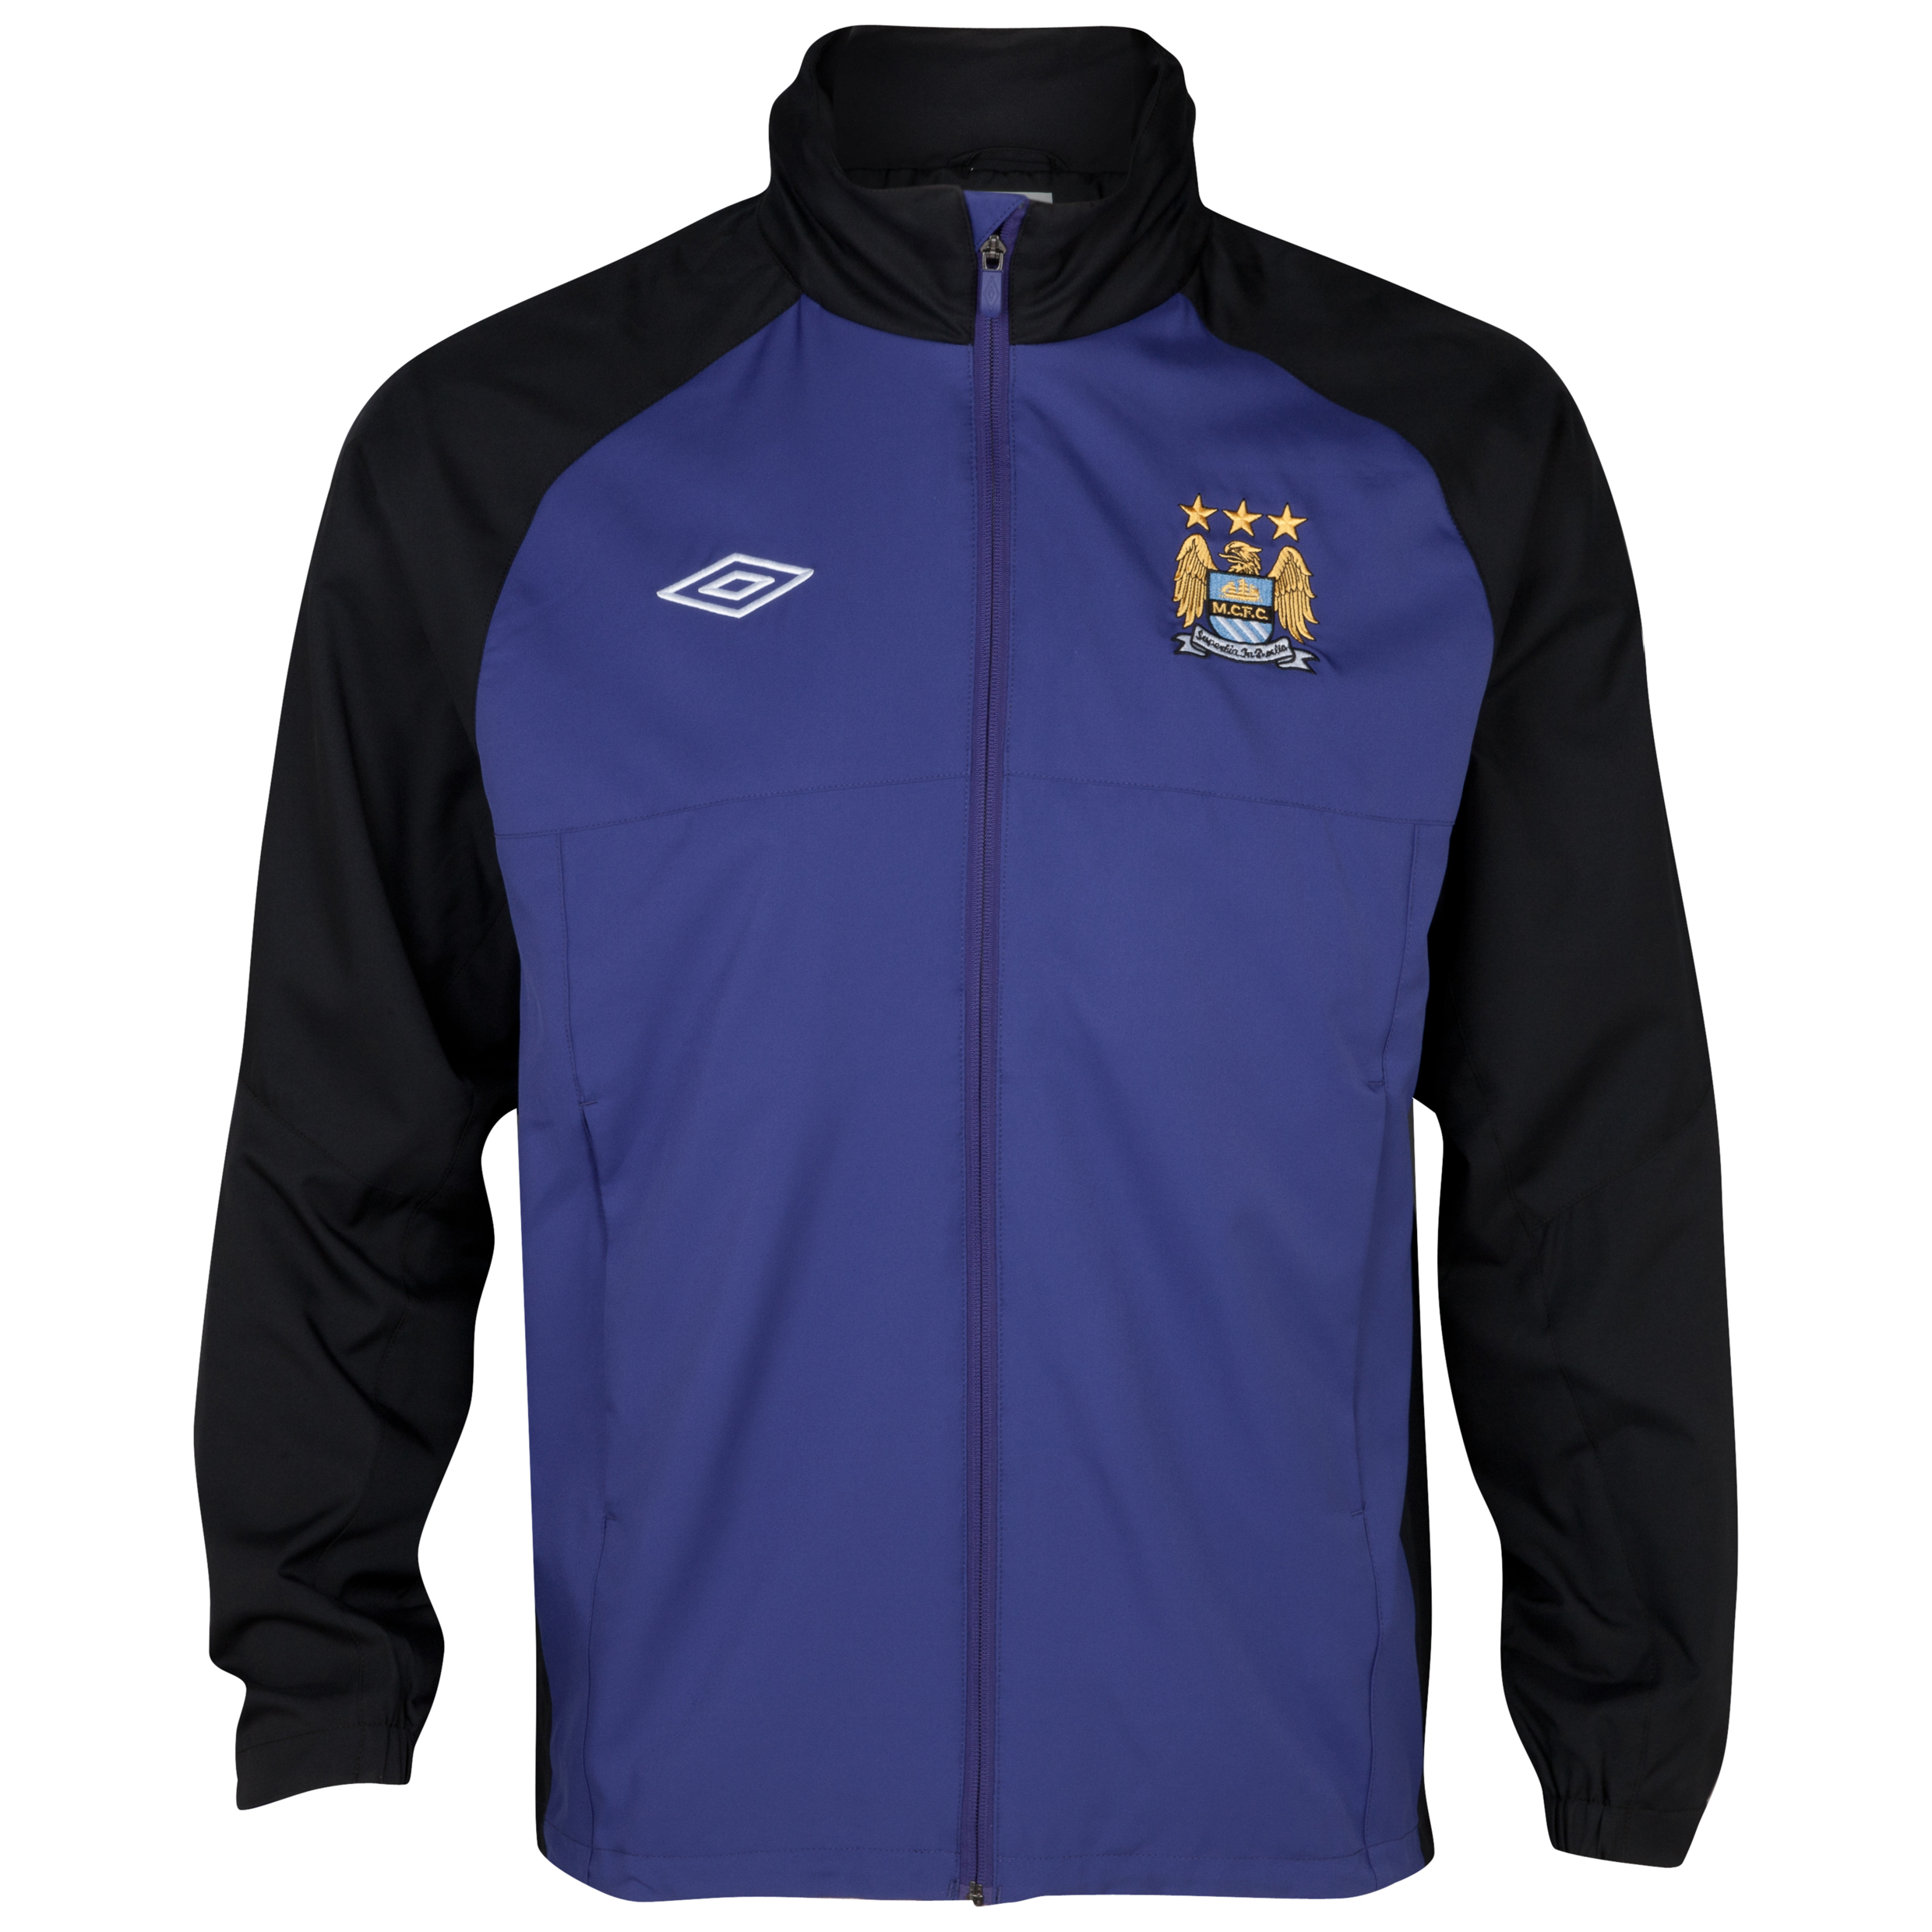 Manchester City Training Shower Jacket - Deep Wisteria / Black